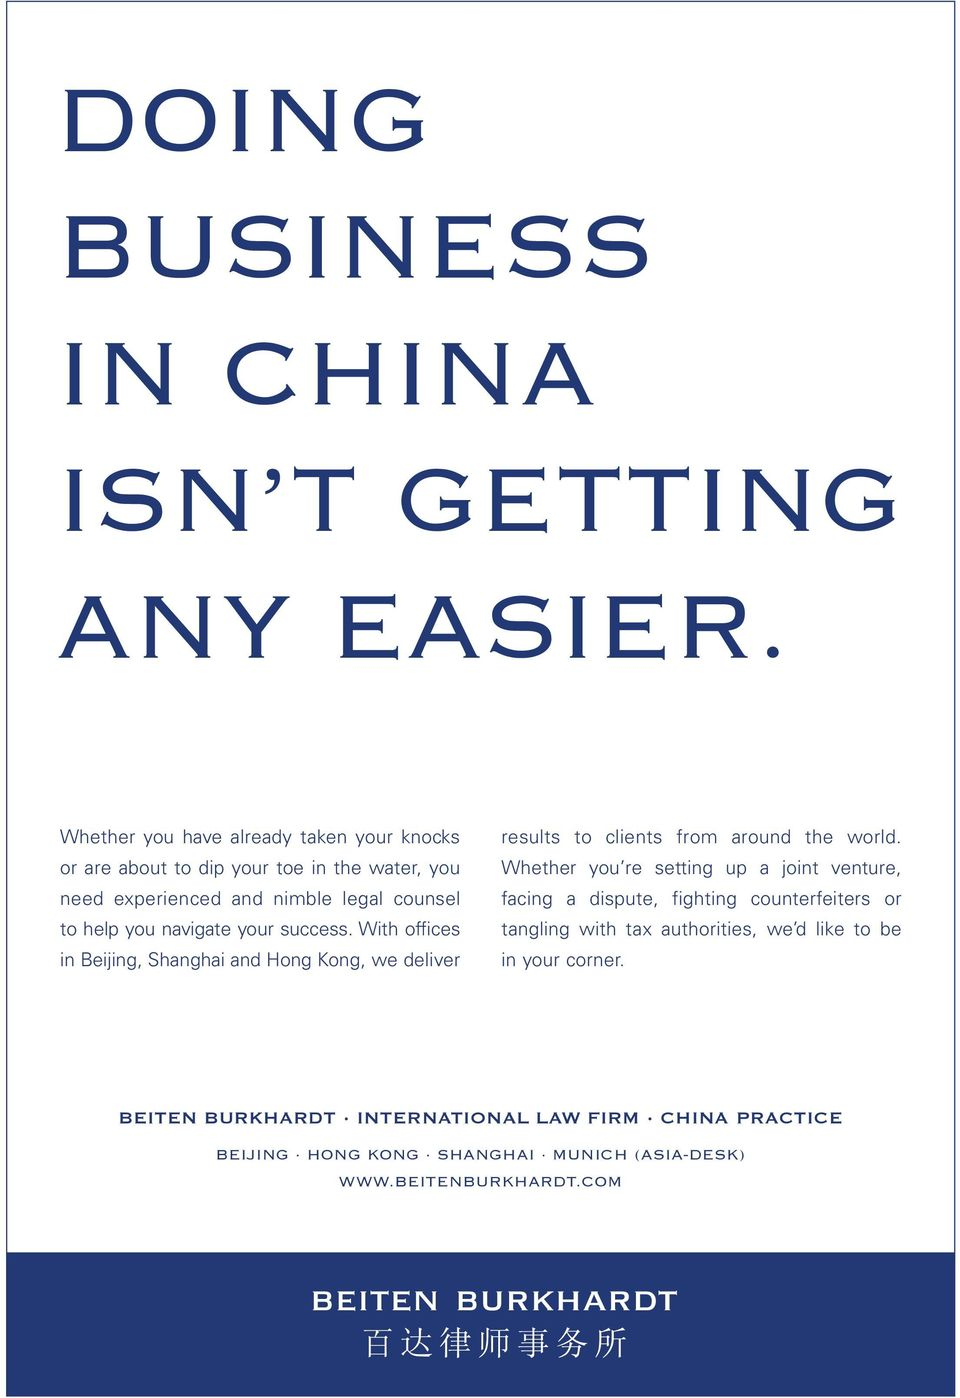 navigate your success. With offices in Beijing, Shanghai and Hong Kong, we deliver results to clients from around the world.